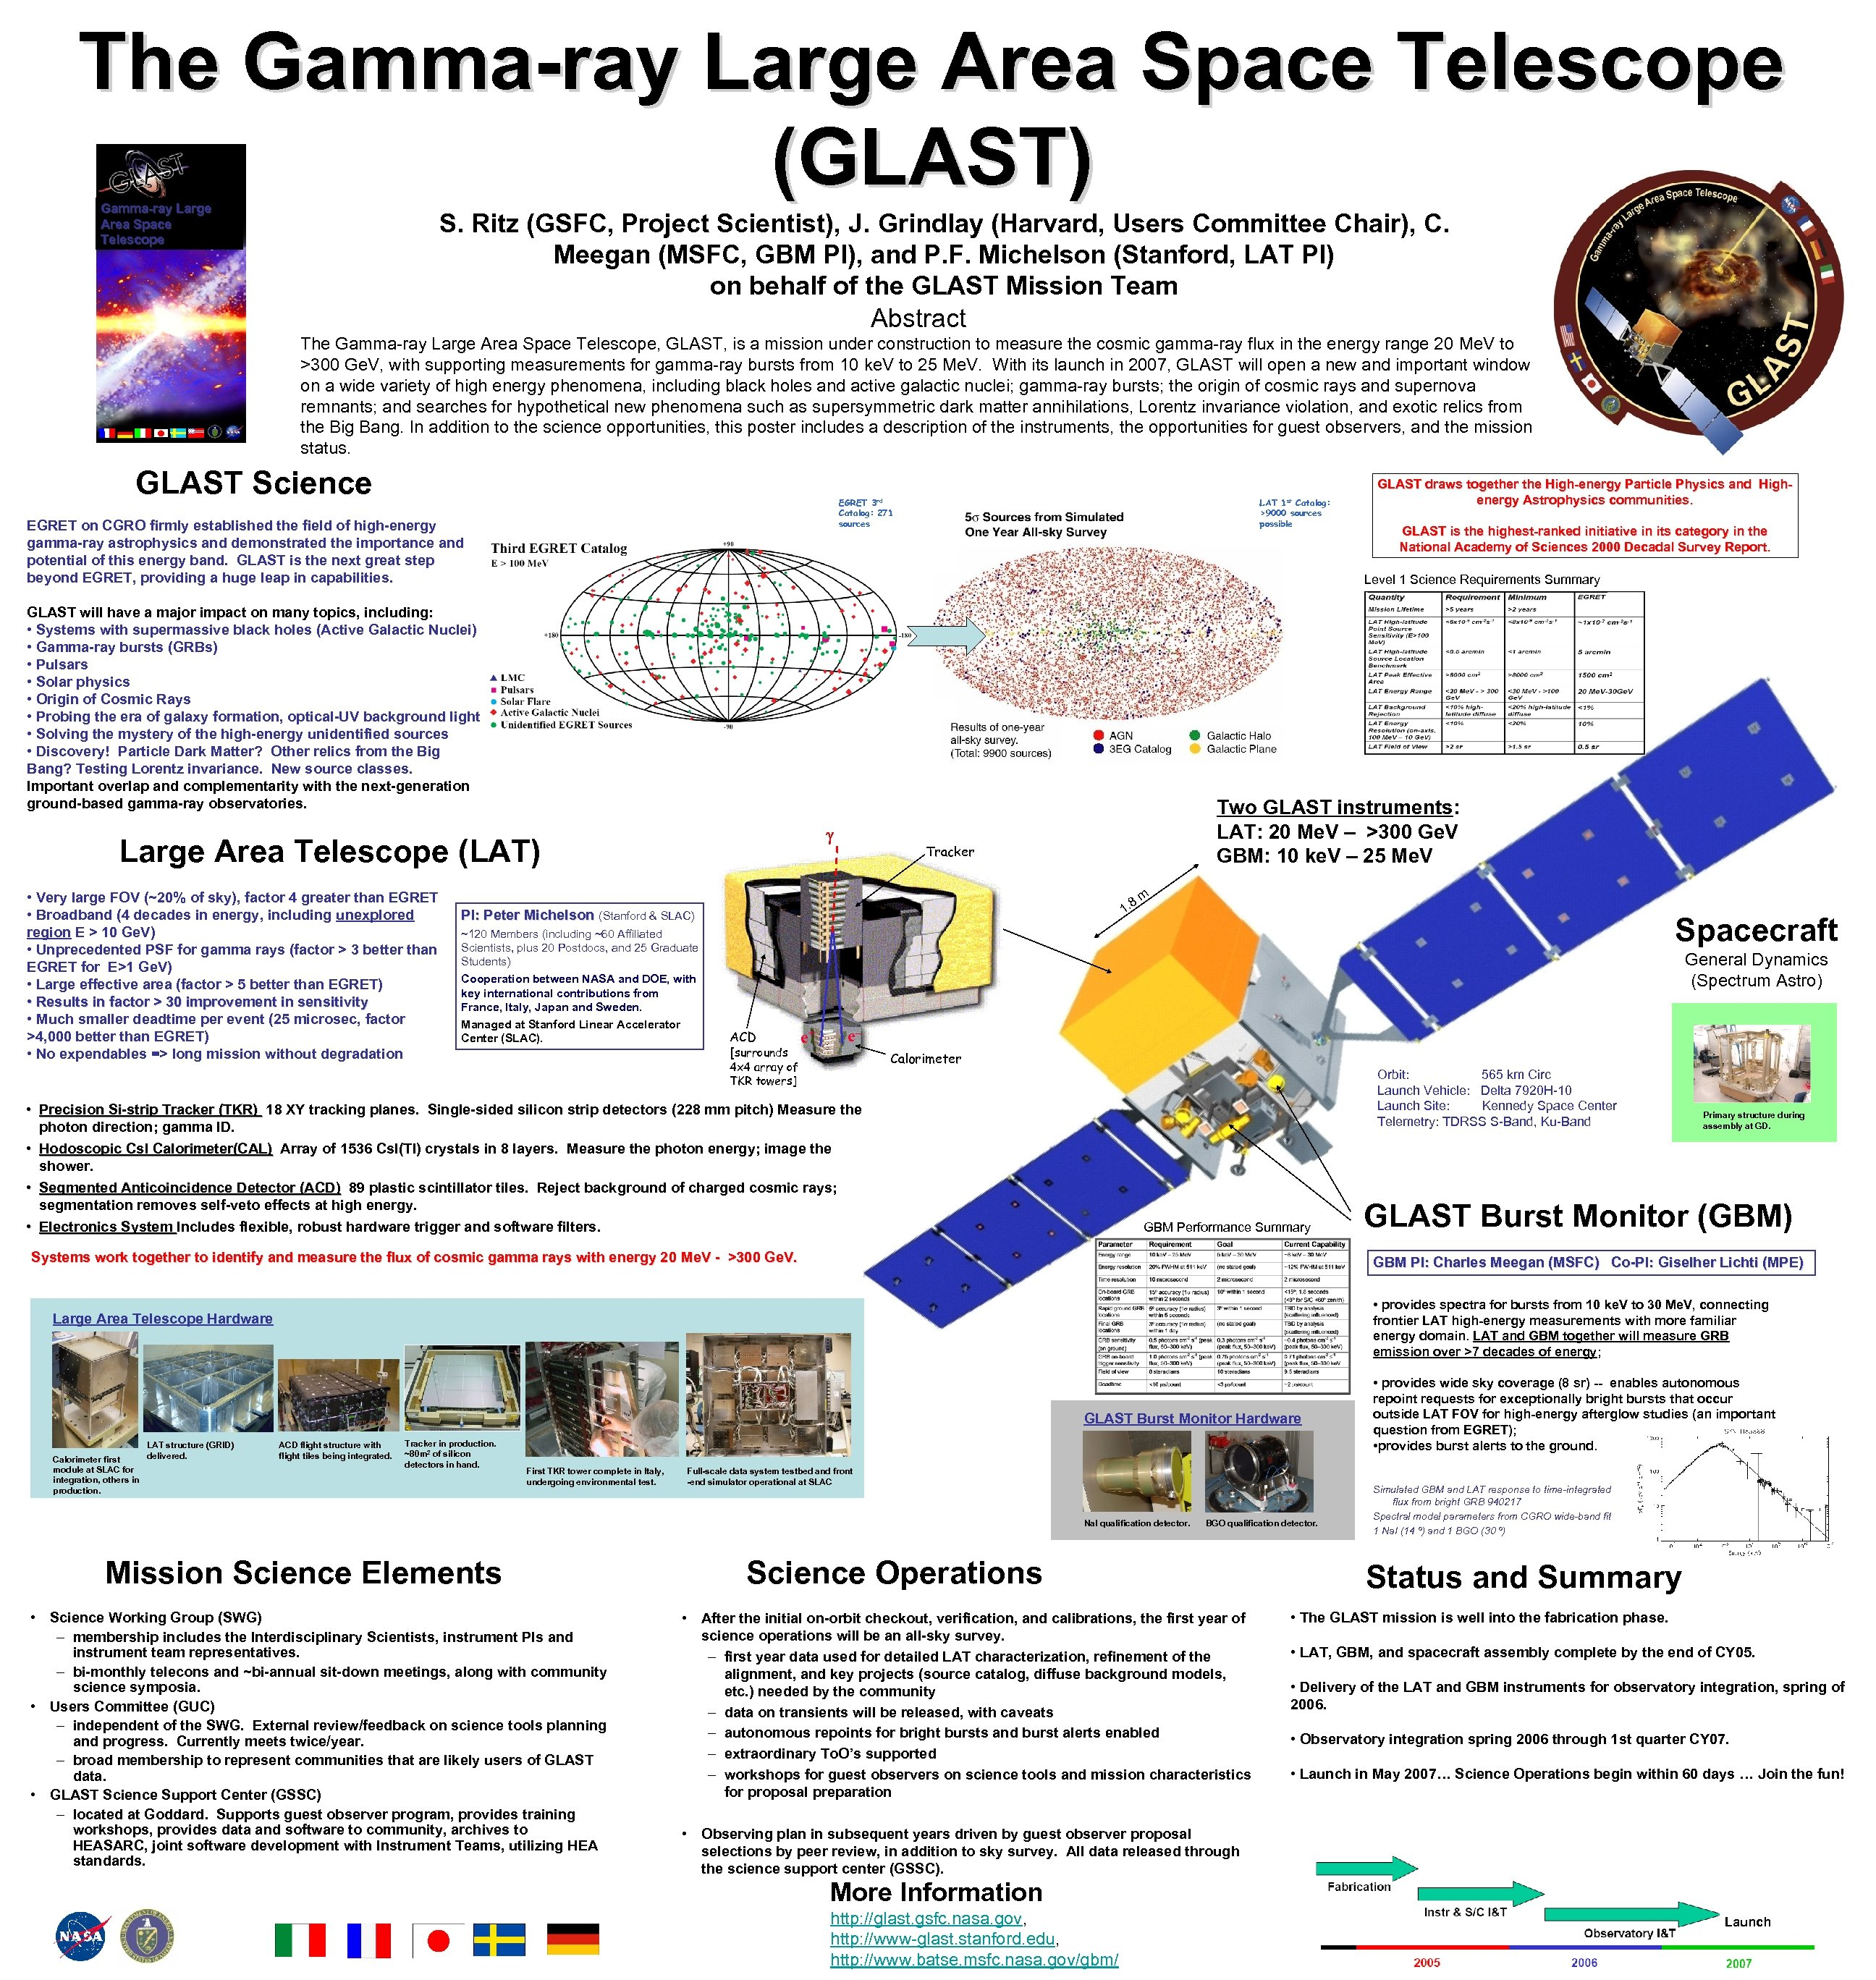 The Gamma-ray Large Area Space Telescope (GLAST) Gamma-ray Large Area Space Telescope S. Ritz